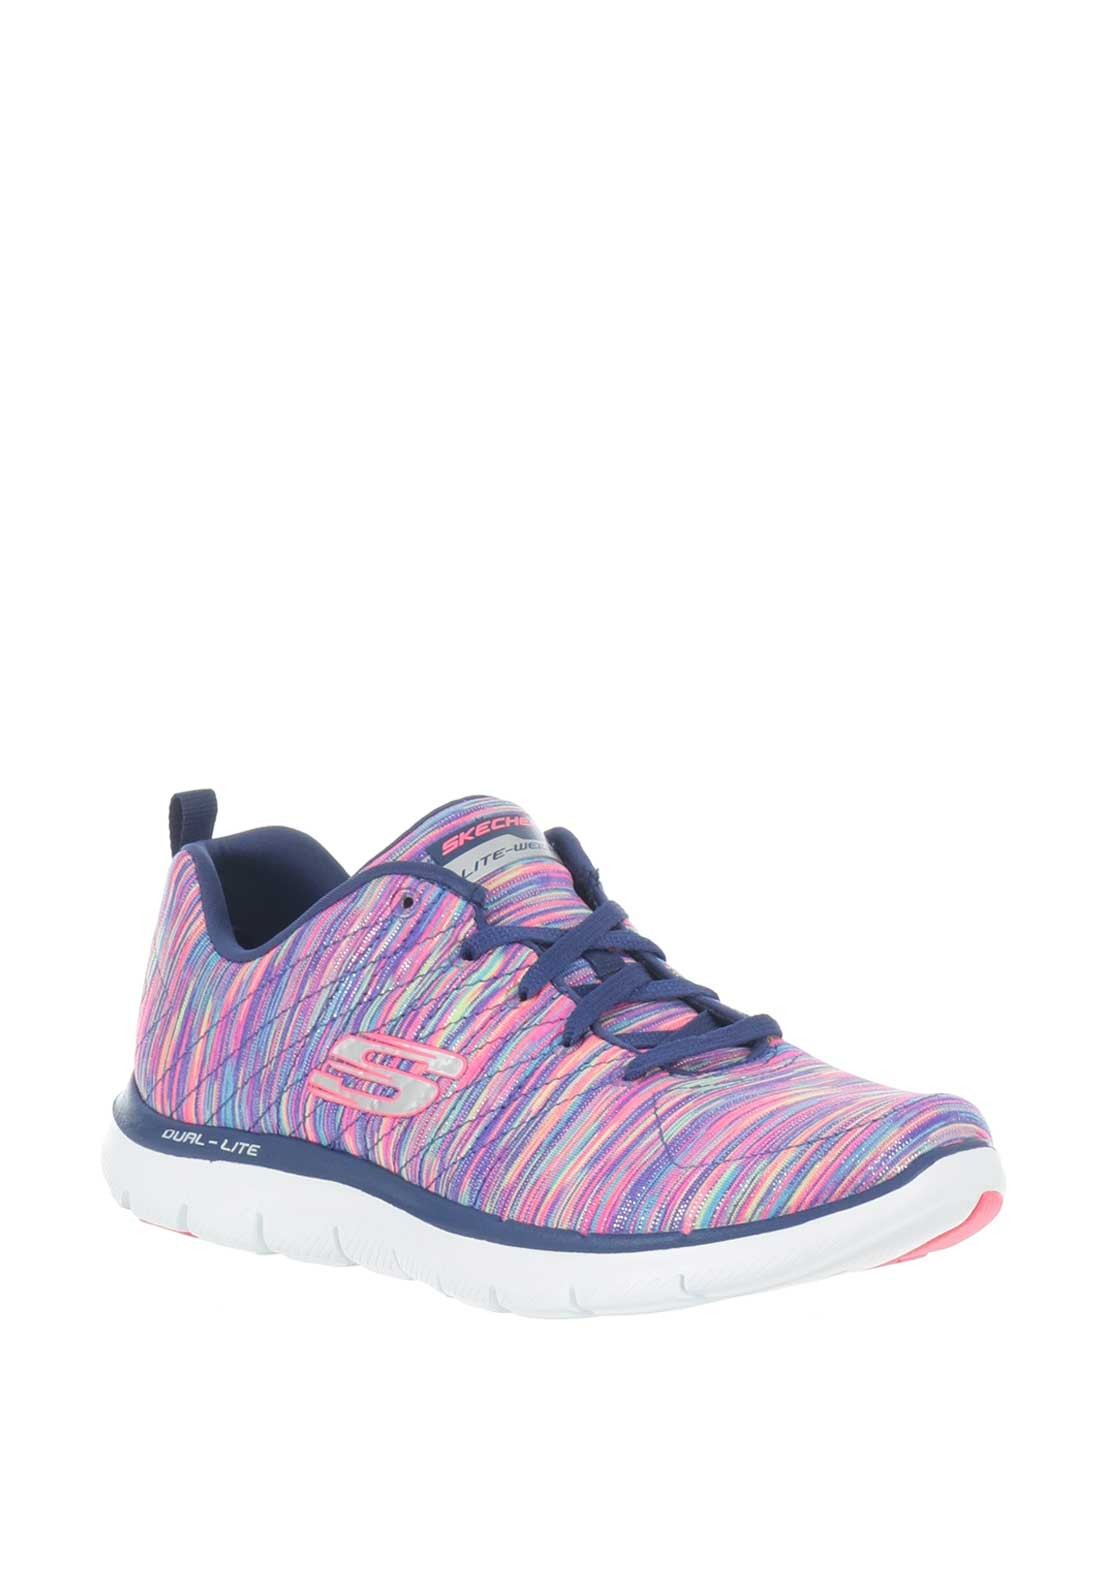 Skechers Womens Lite Weight Trainers, Multi Coloured